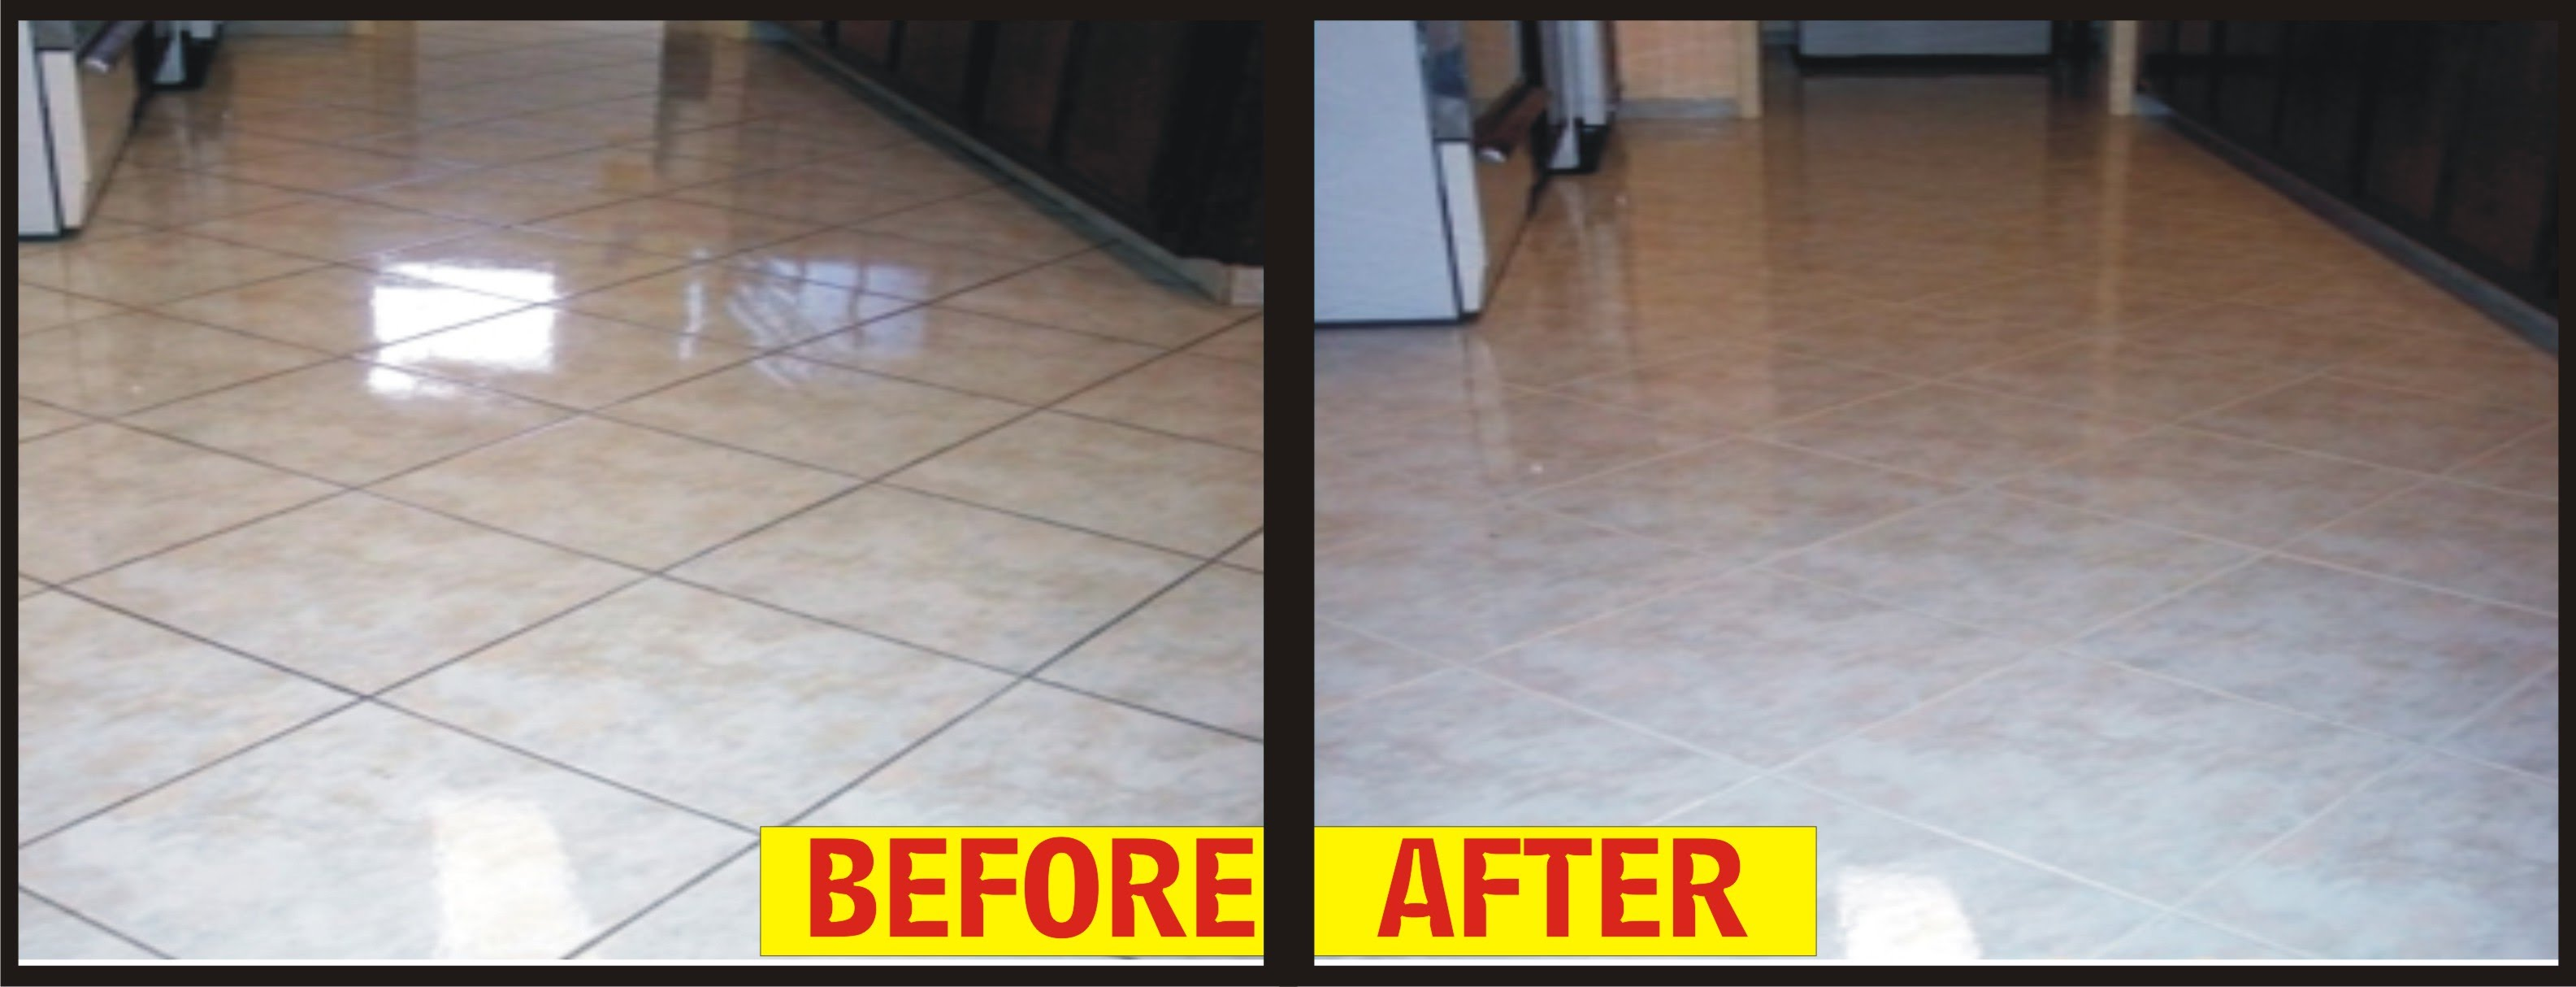 Tile Grout Cleaning Tile Grout Cleaning Carpet Cleaner - Clean and reseal grout